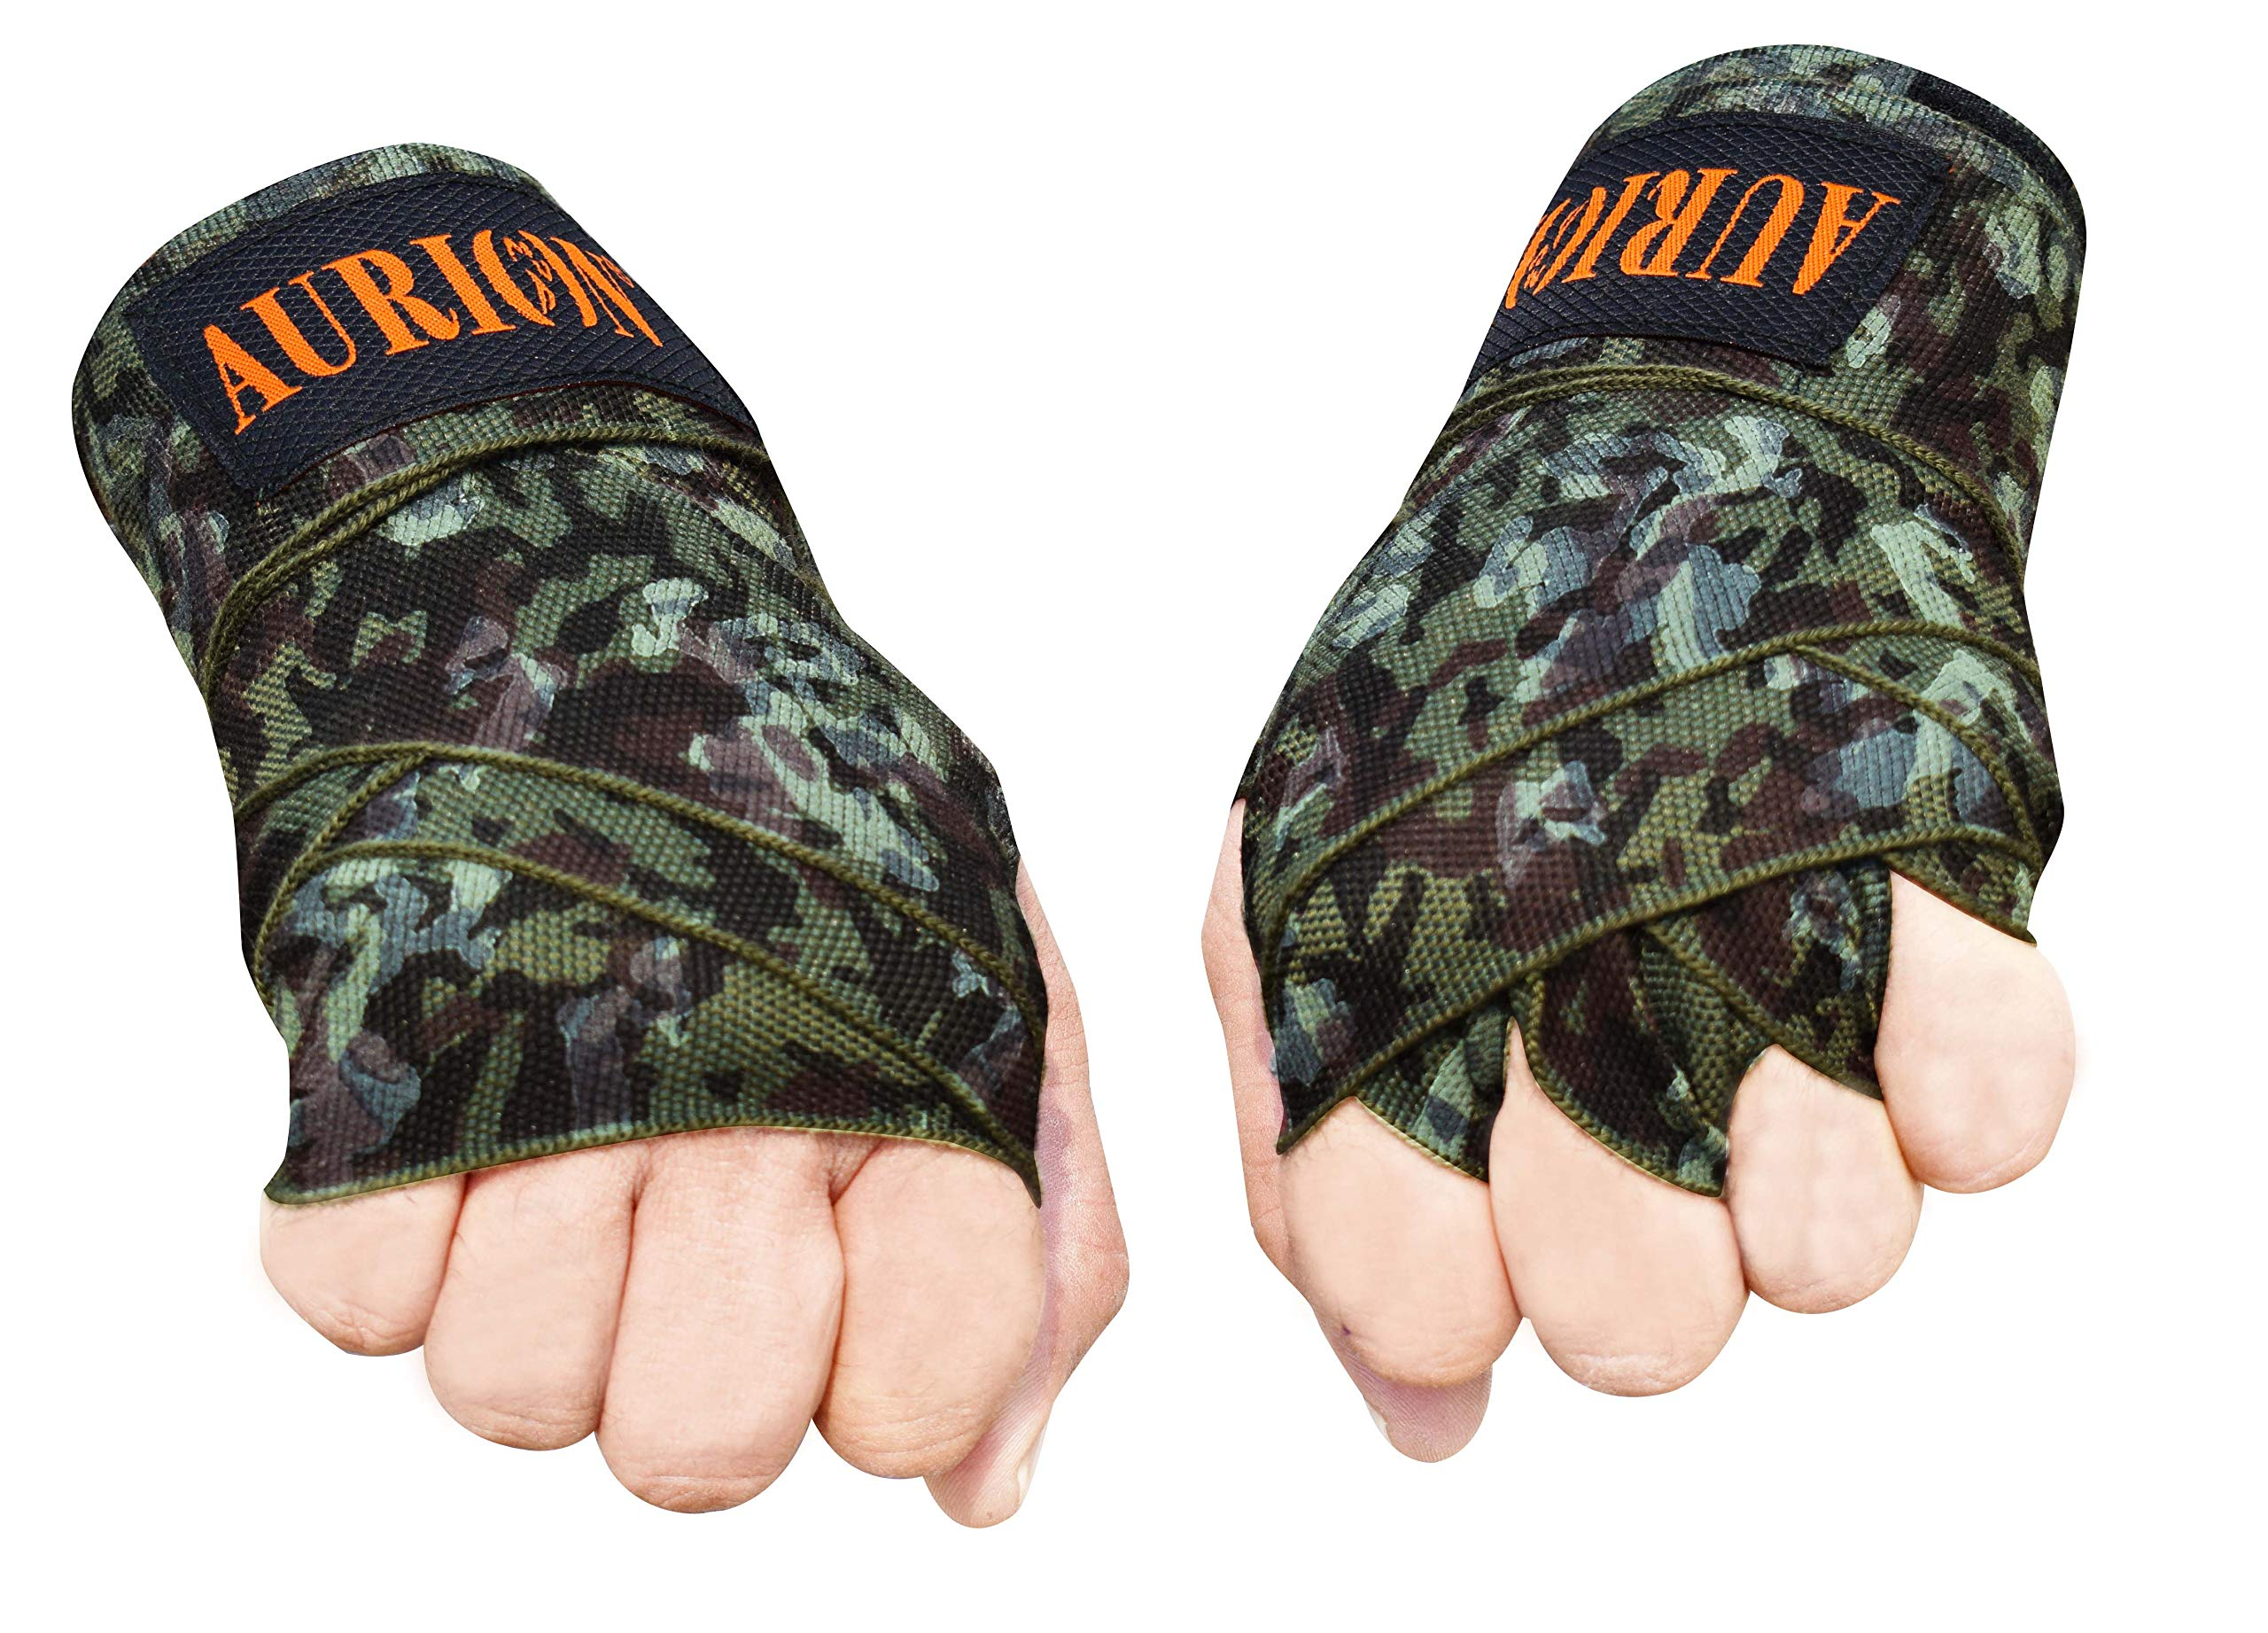 Amazon price history for Boxing Hand Wraps Mexican Bandage Muay Thai PRO Blood Red Wrap Kickboxing Glove Stretchy Bandages MMA Training Workout Cotton Twin Pack (CAMO-Green, 108 INCHES)